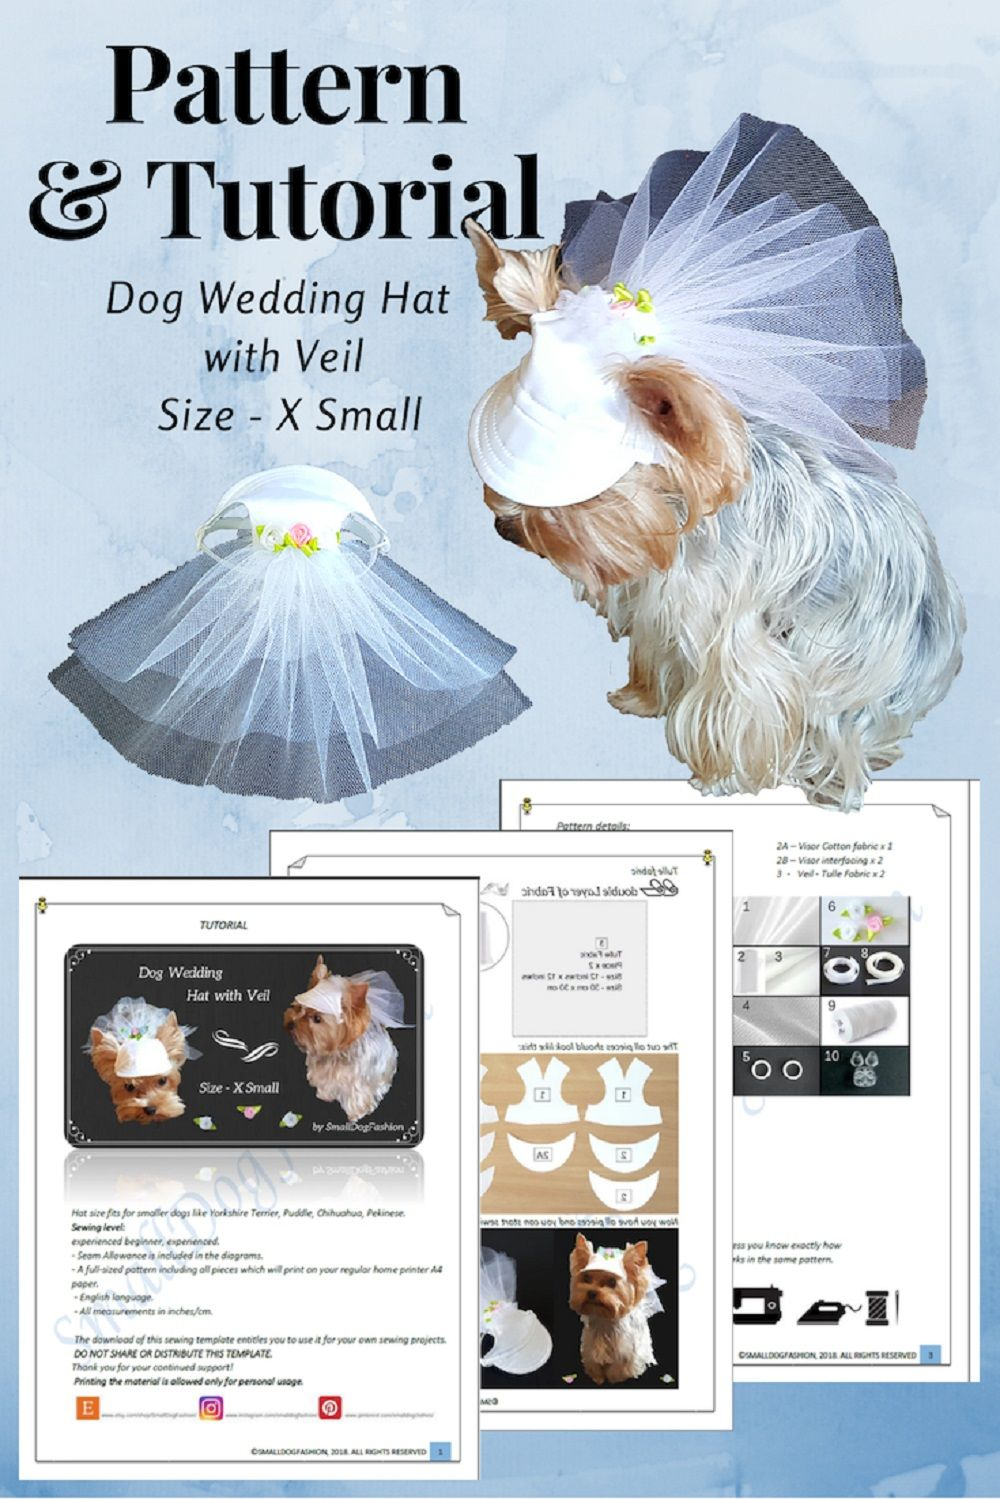 Dog Hat Pattern Pdf Wedding Dog Hat With Veil Pet Clothes Pdf Small Dog Clothes Hat For Dog Pdf Pattern Dog Clothes Wedding Dogs Pet Dog Hat Small Dog Clothes Dog